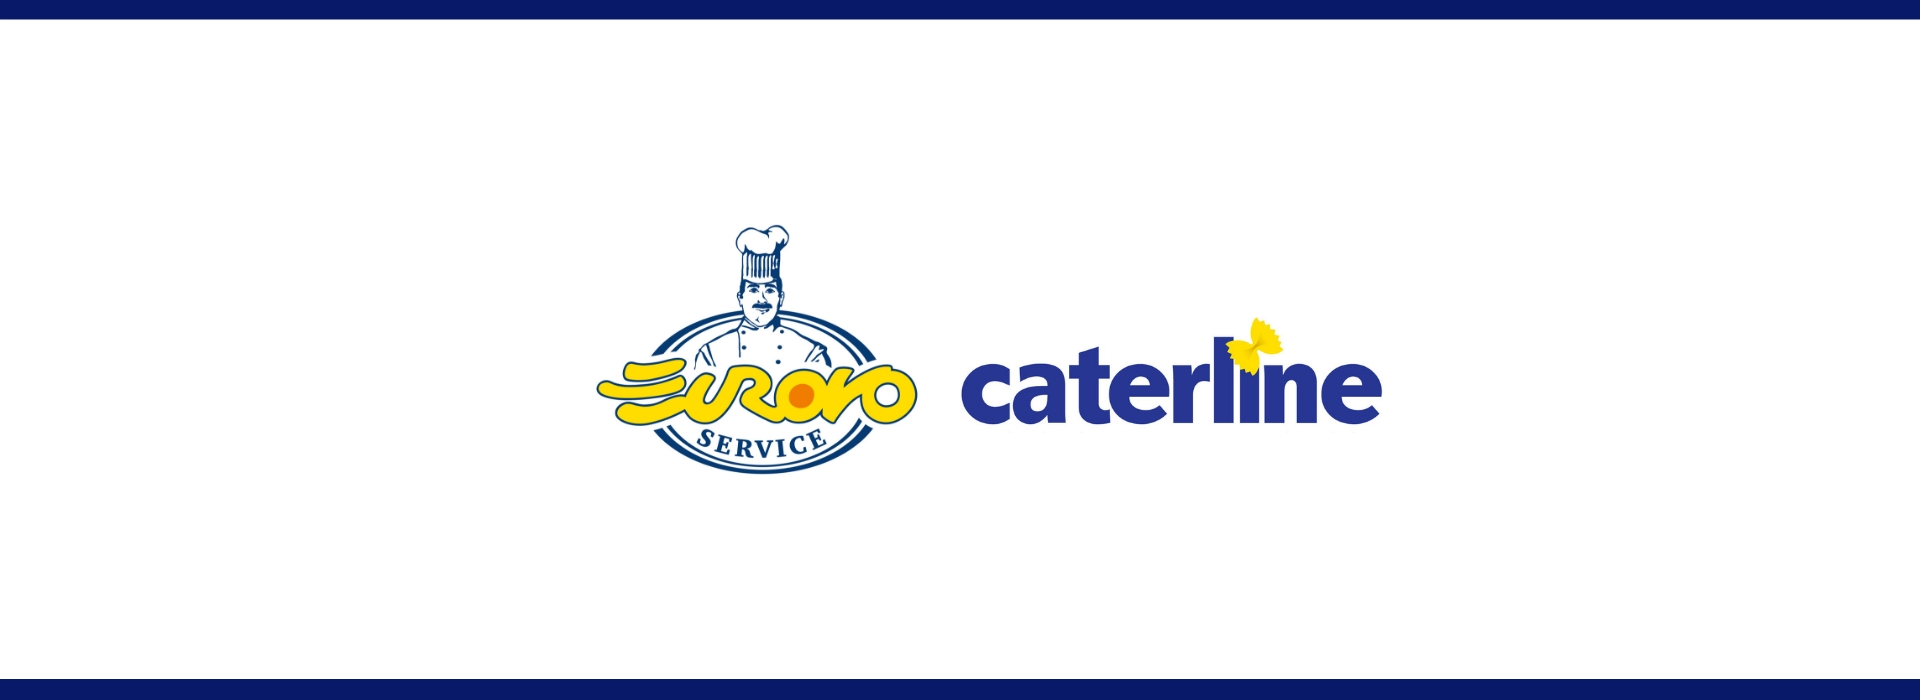 Eurovo Service e Caterline: una lunga e proficua partnership